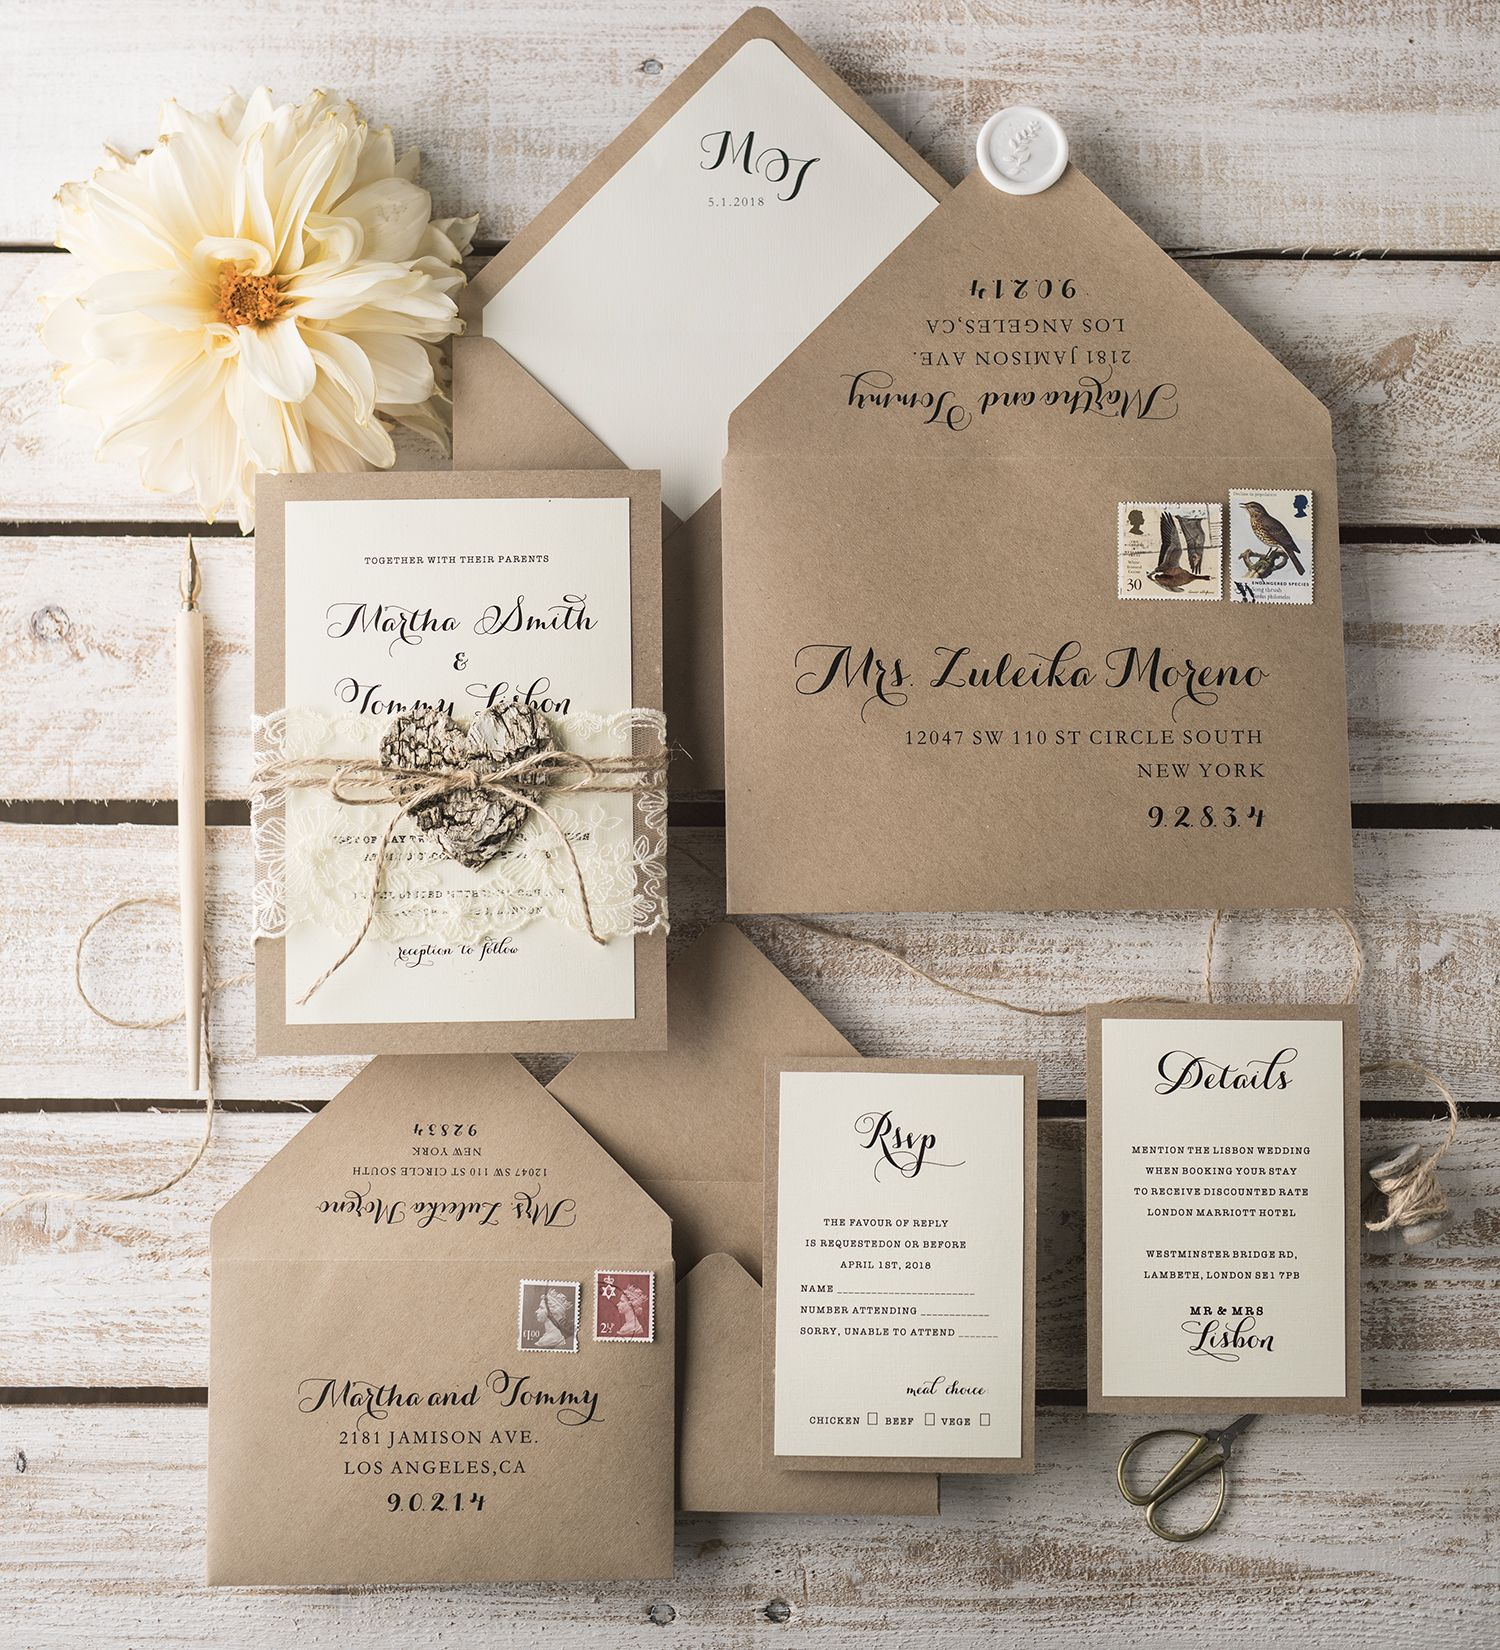 Cheap Online Wedding Invitations: Wedding Invitations Personalised Cheap 02/rus1/z In 2019